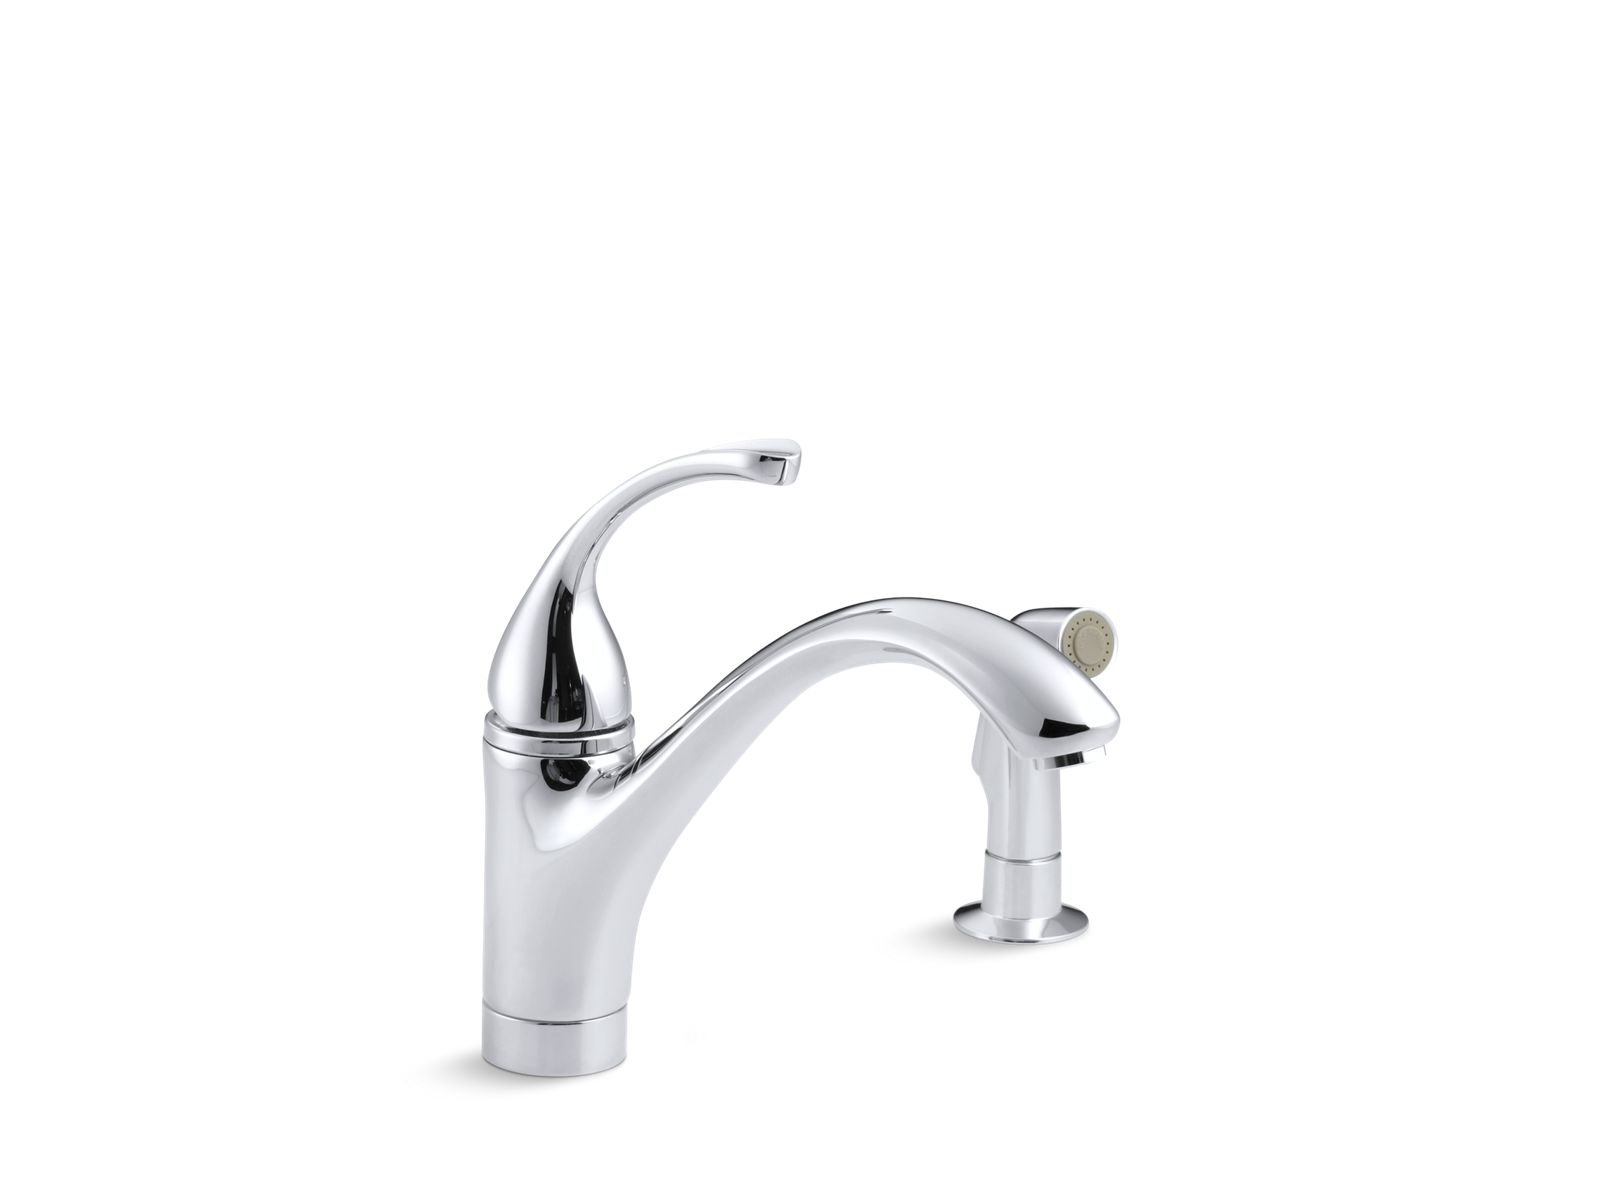 Forté Single Handle Kitchen Sink Faucet | K 10416 | KOHLER